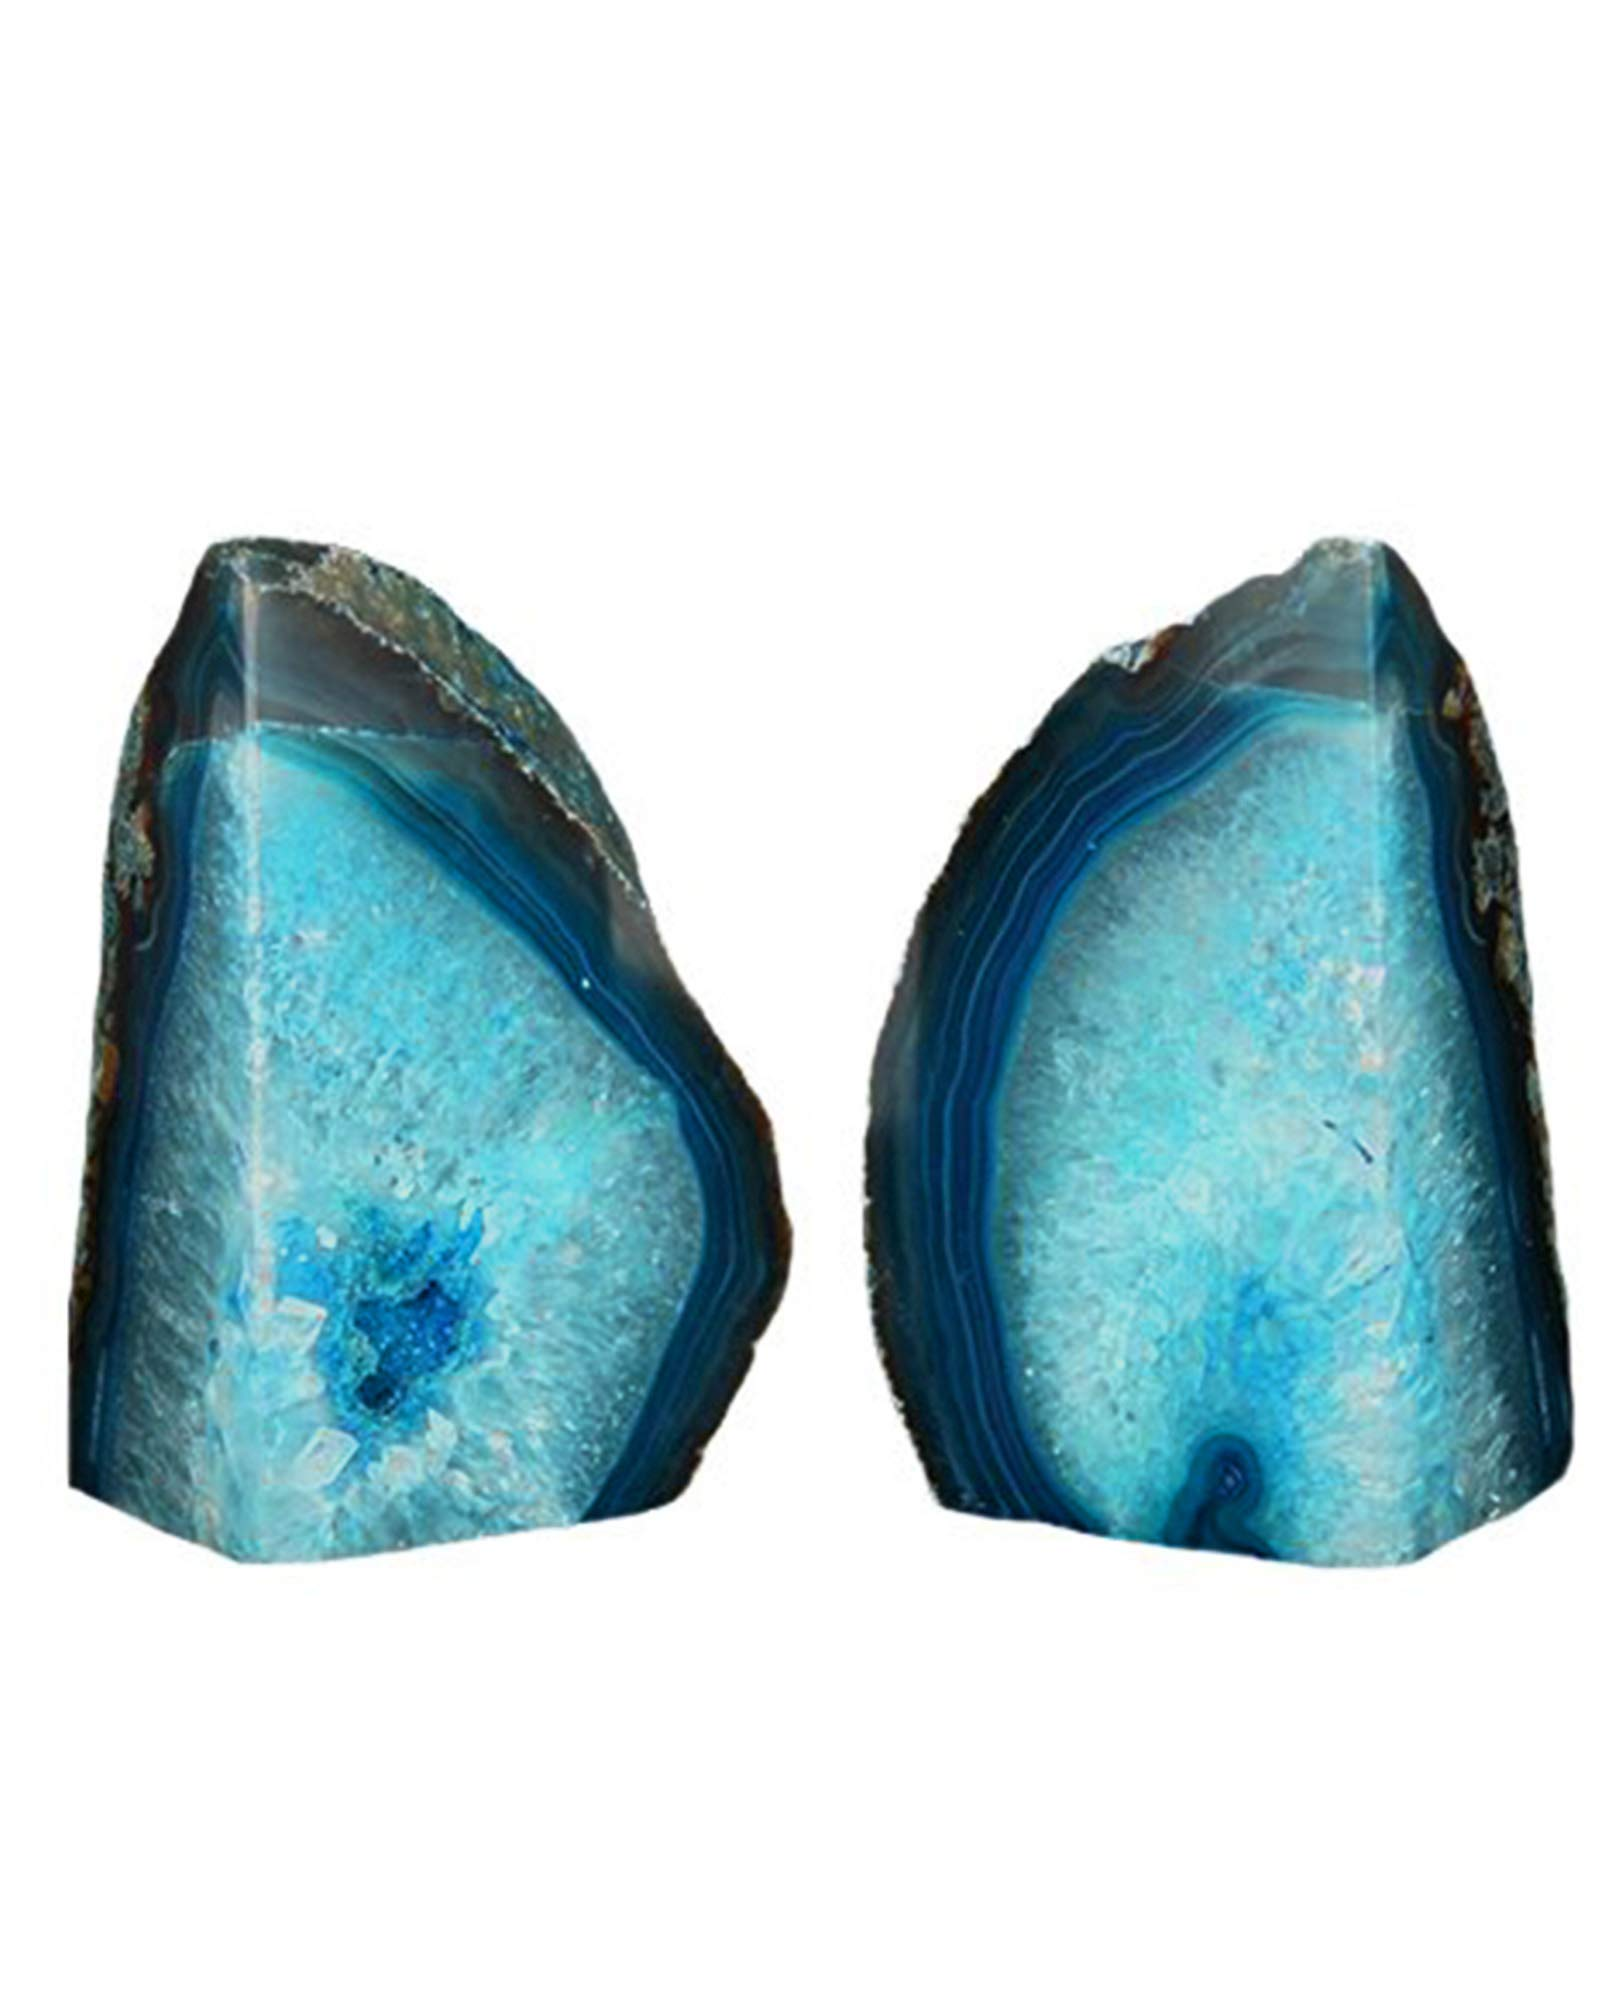 AMOYSTONE Green Agate Bookends Book Ends Pair Dyed Teal Pair 6-8 lbs Office Bookshelf by AMOYSTONE